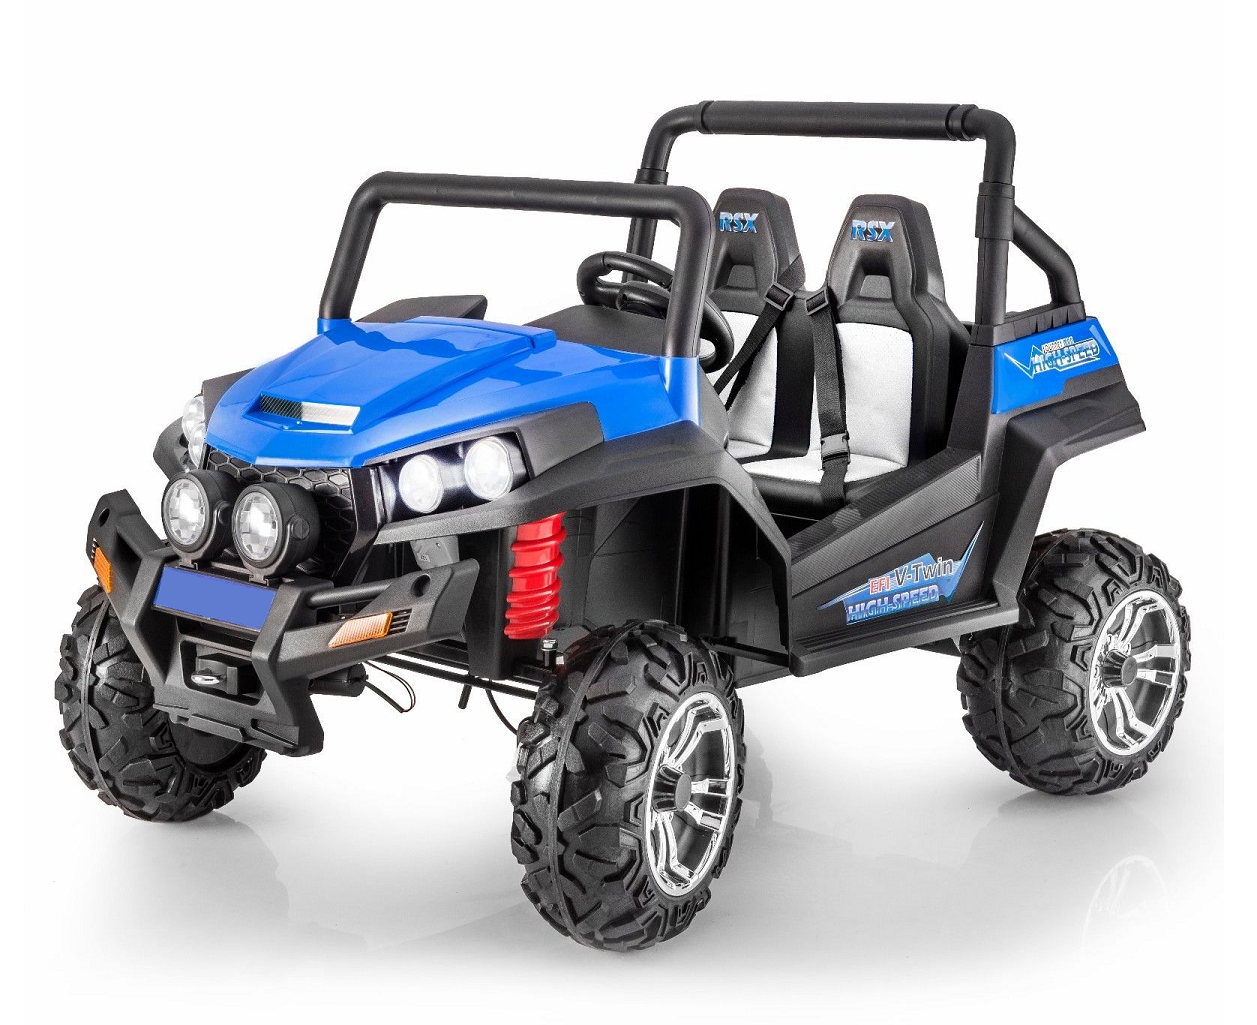 Magic Cars® 2 Seater ATV 12 Volt Remote Control Ride On Quad ... on mo control cars, games cars, rc cars, manual cars, future technology cars, computer cars, hand controls for cars, power cars, keyless entry system for cars, robot cars, cool lowrider cars, best cars, dvd cars, superhero cars, radio cars, iphone control cars, unique romote control cars, aftermarket keyless remotes for cars, sound cars,